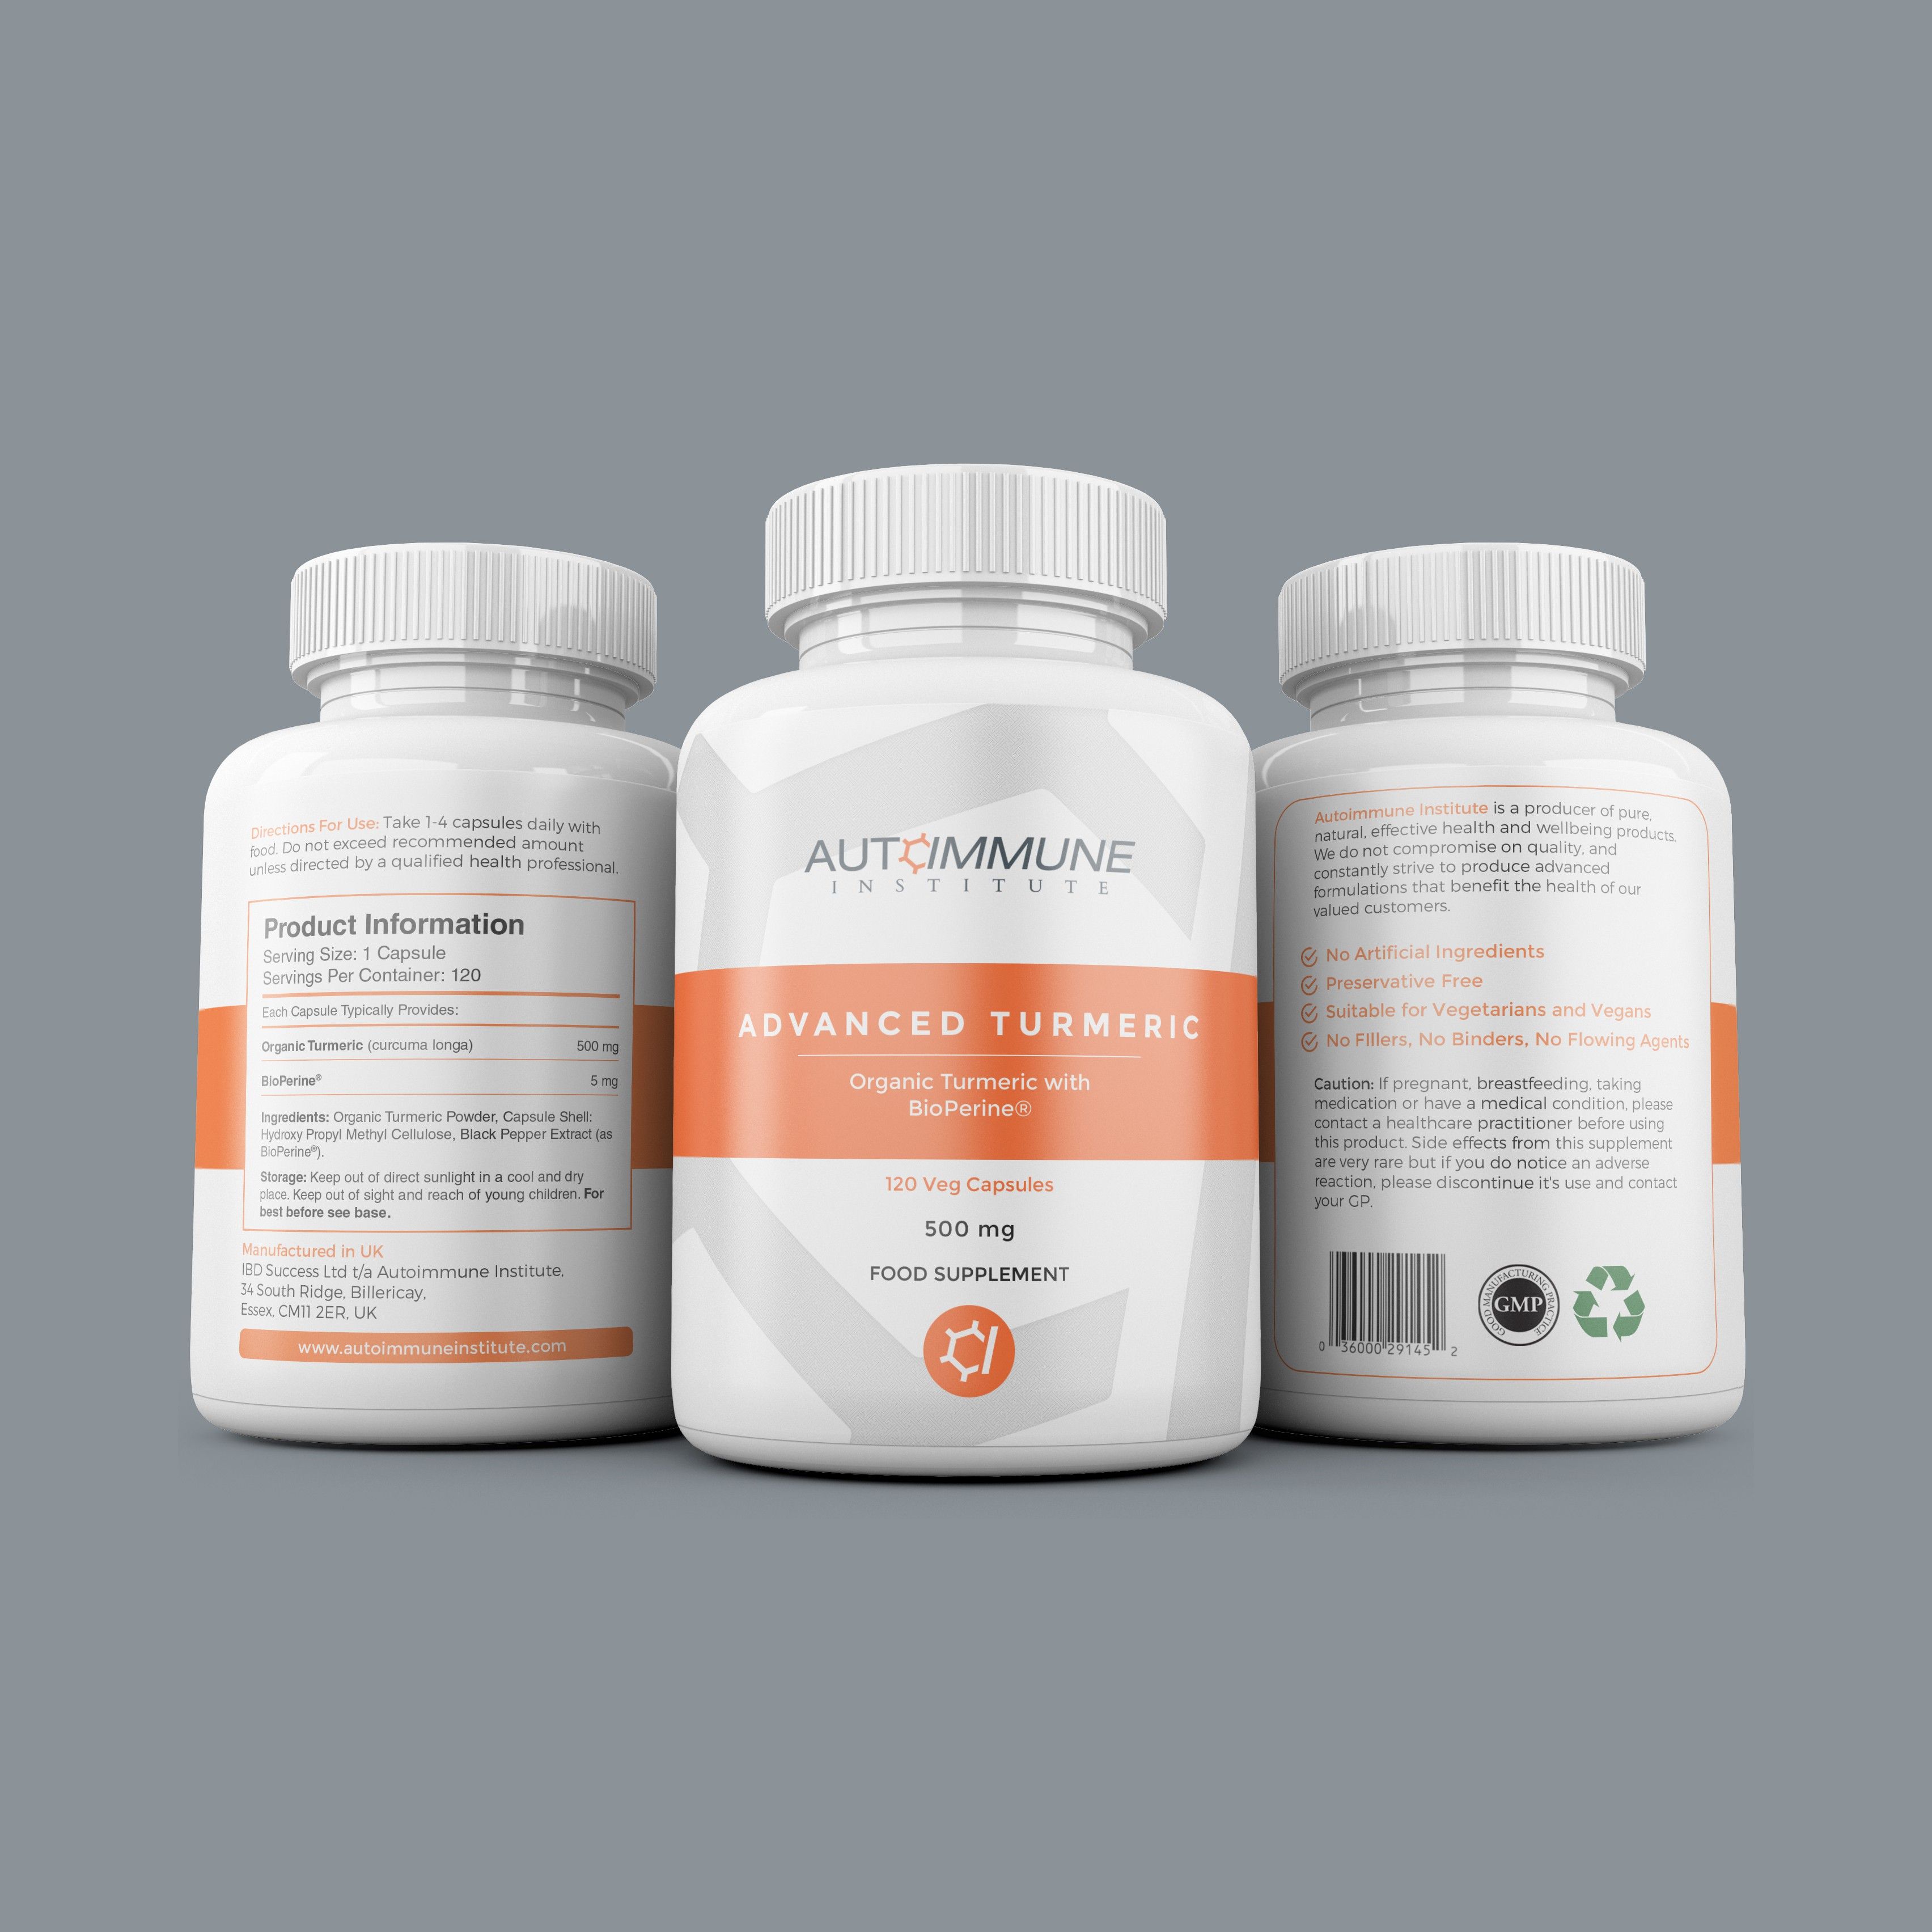 Clean, modern supplement label for new health brand